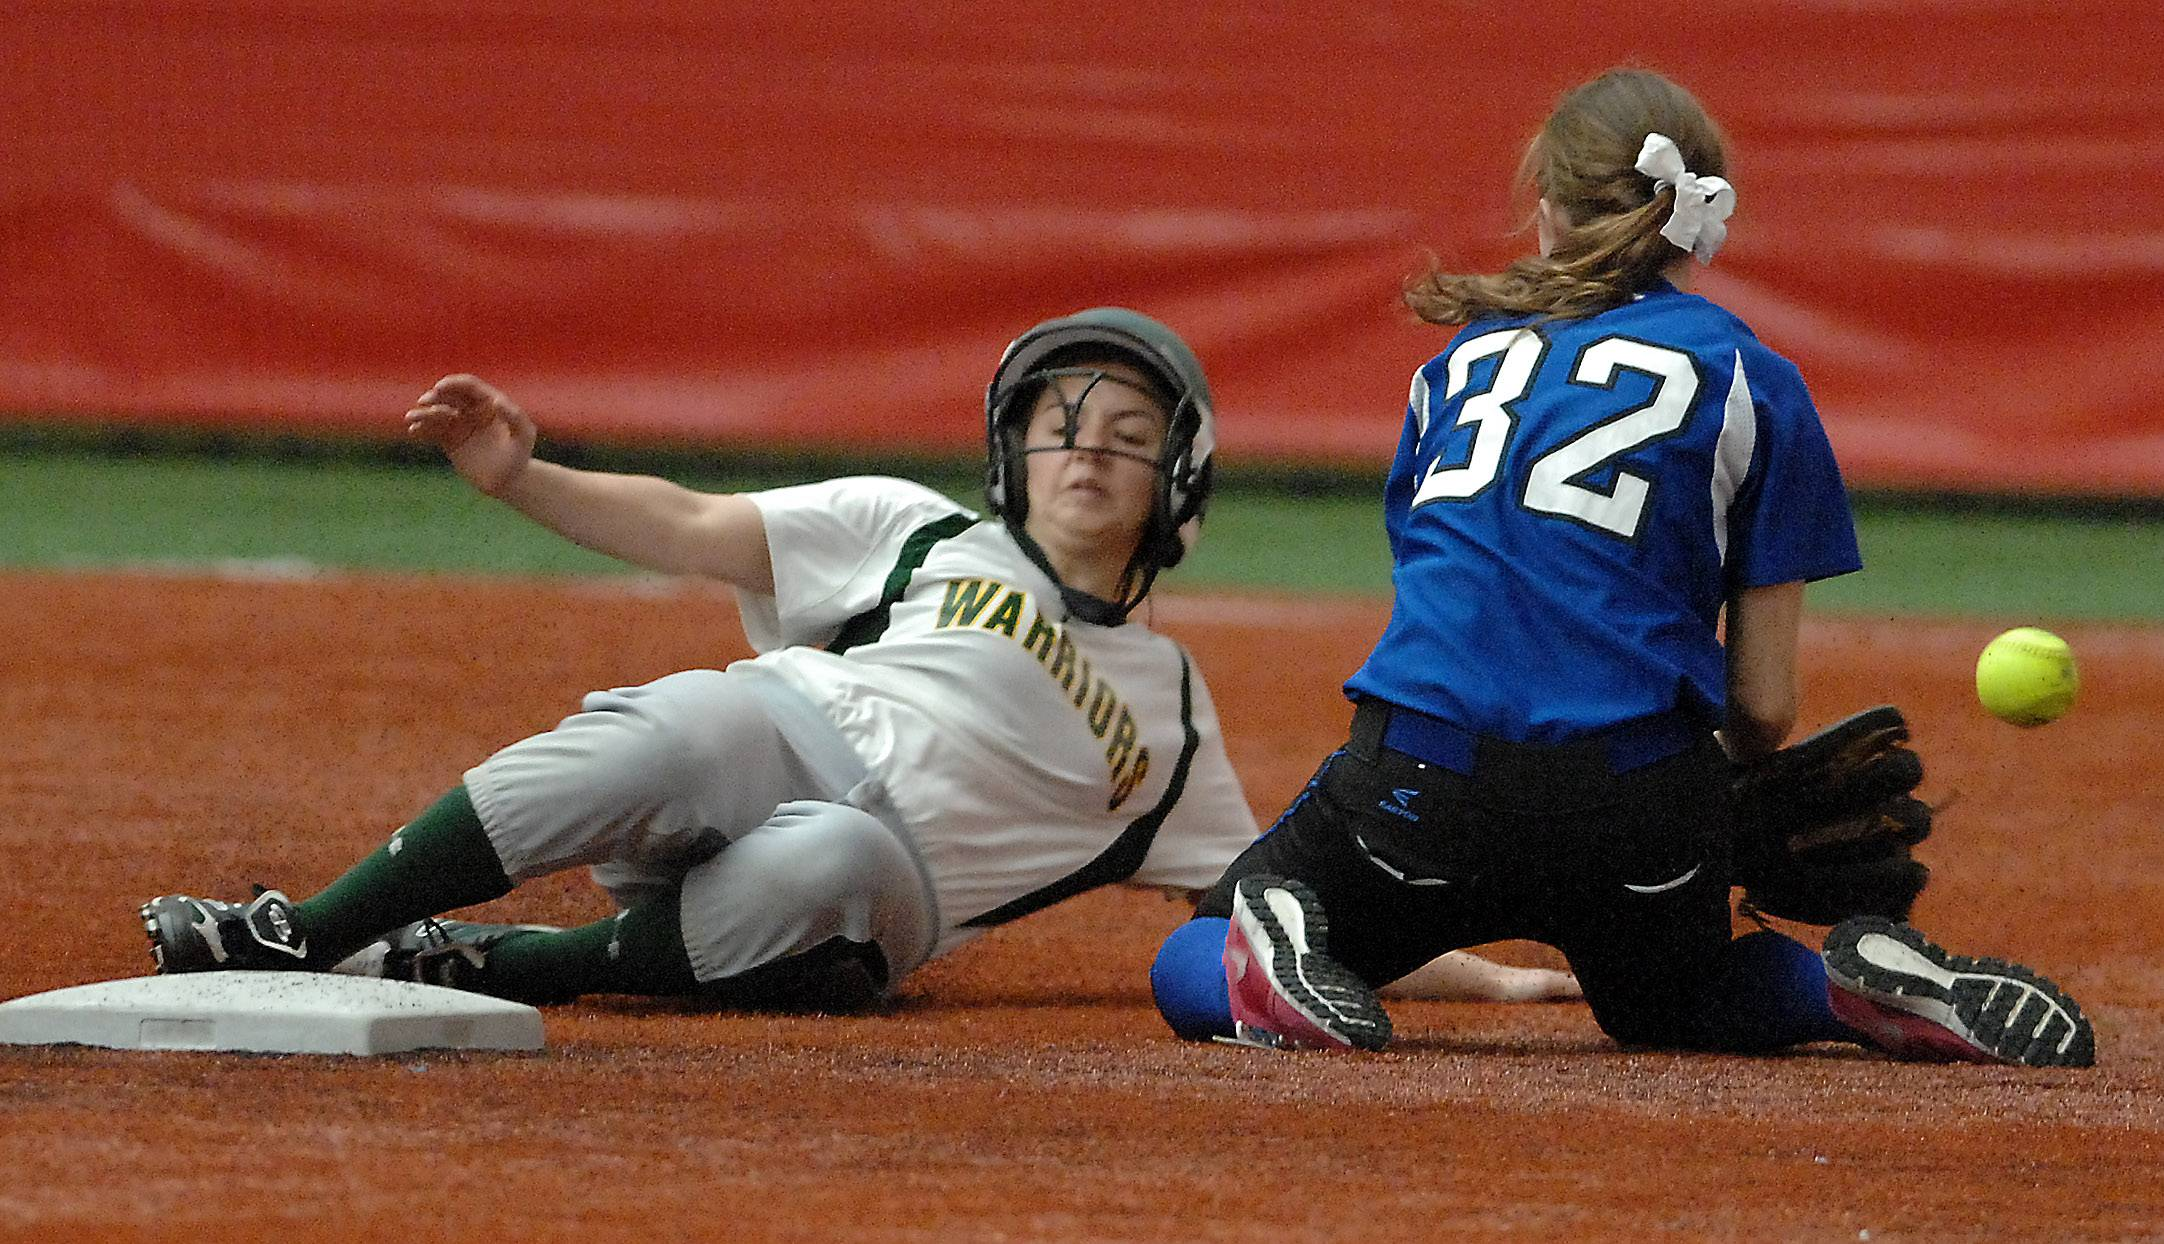 Waubonsie Valley's Sabrina Calabrese slides safely into second with a steal as Burlington Central's Tori Harvey takes the late throw during softball action in Rosemont Wednesday.